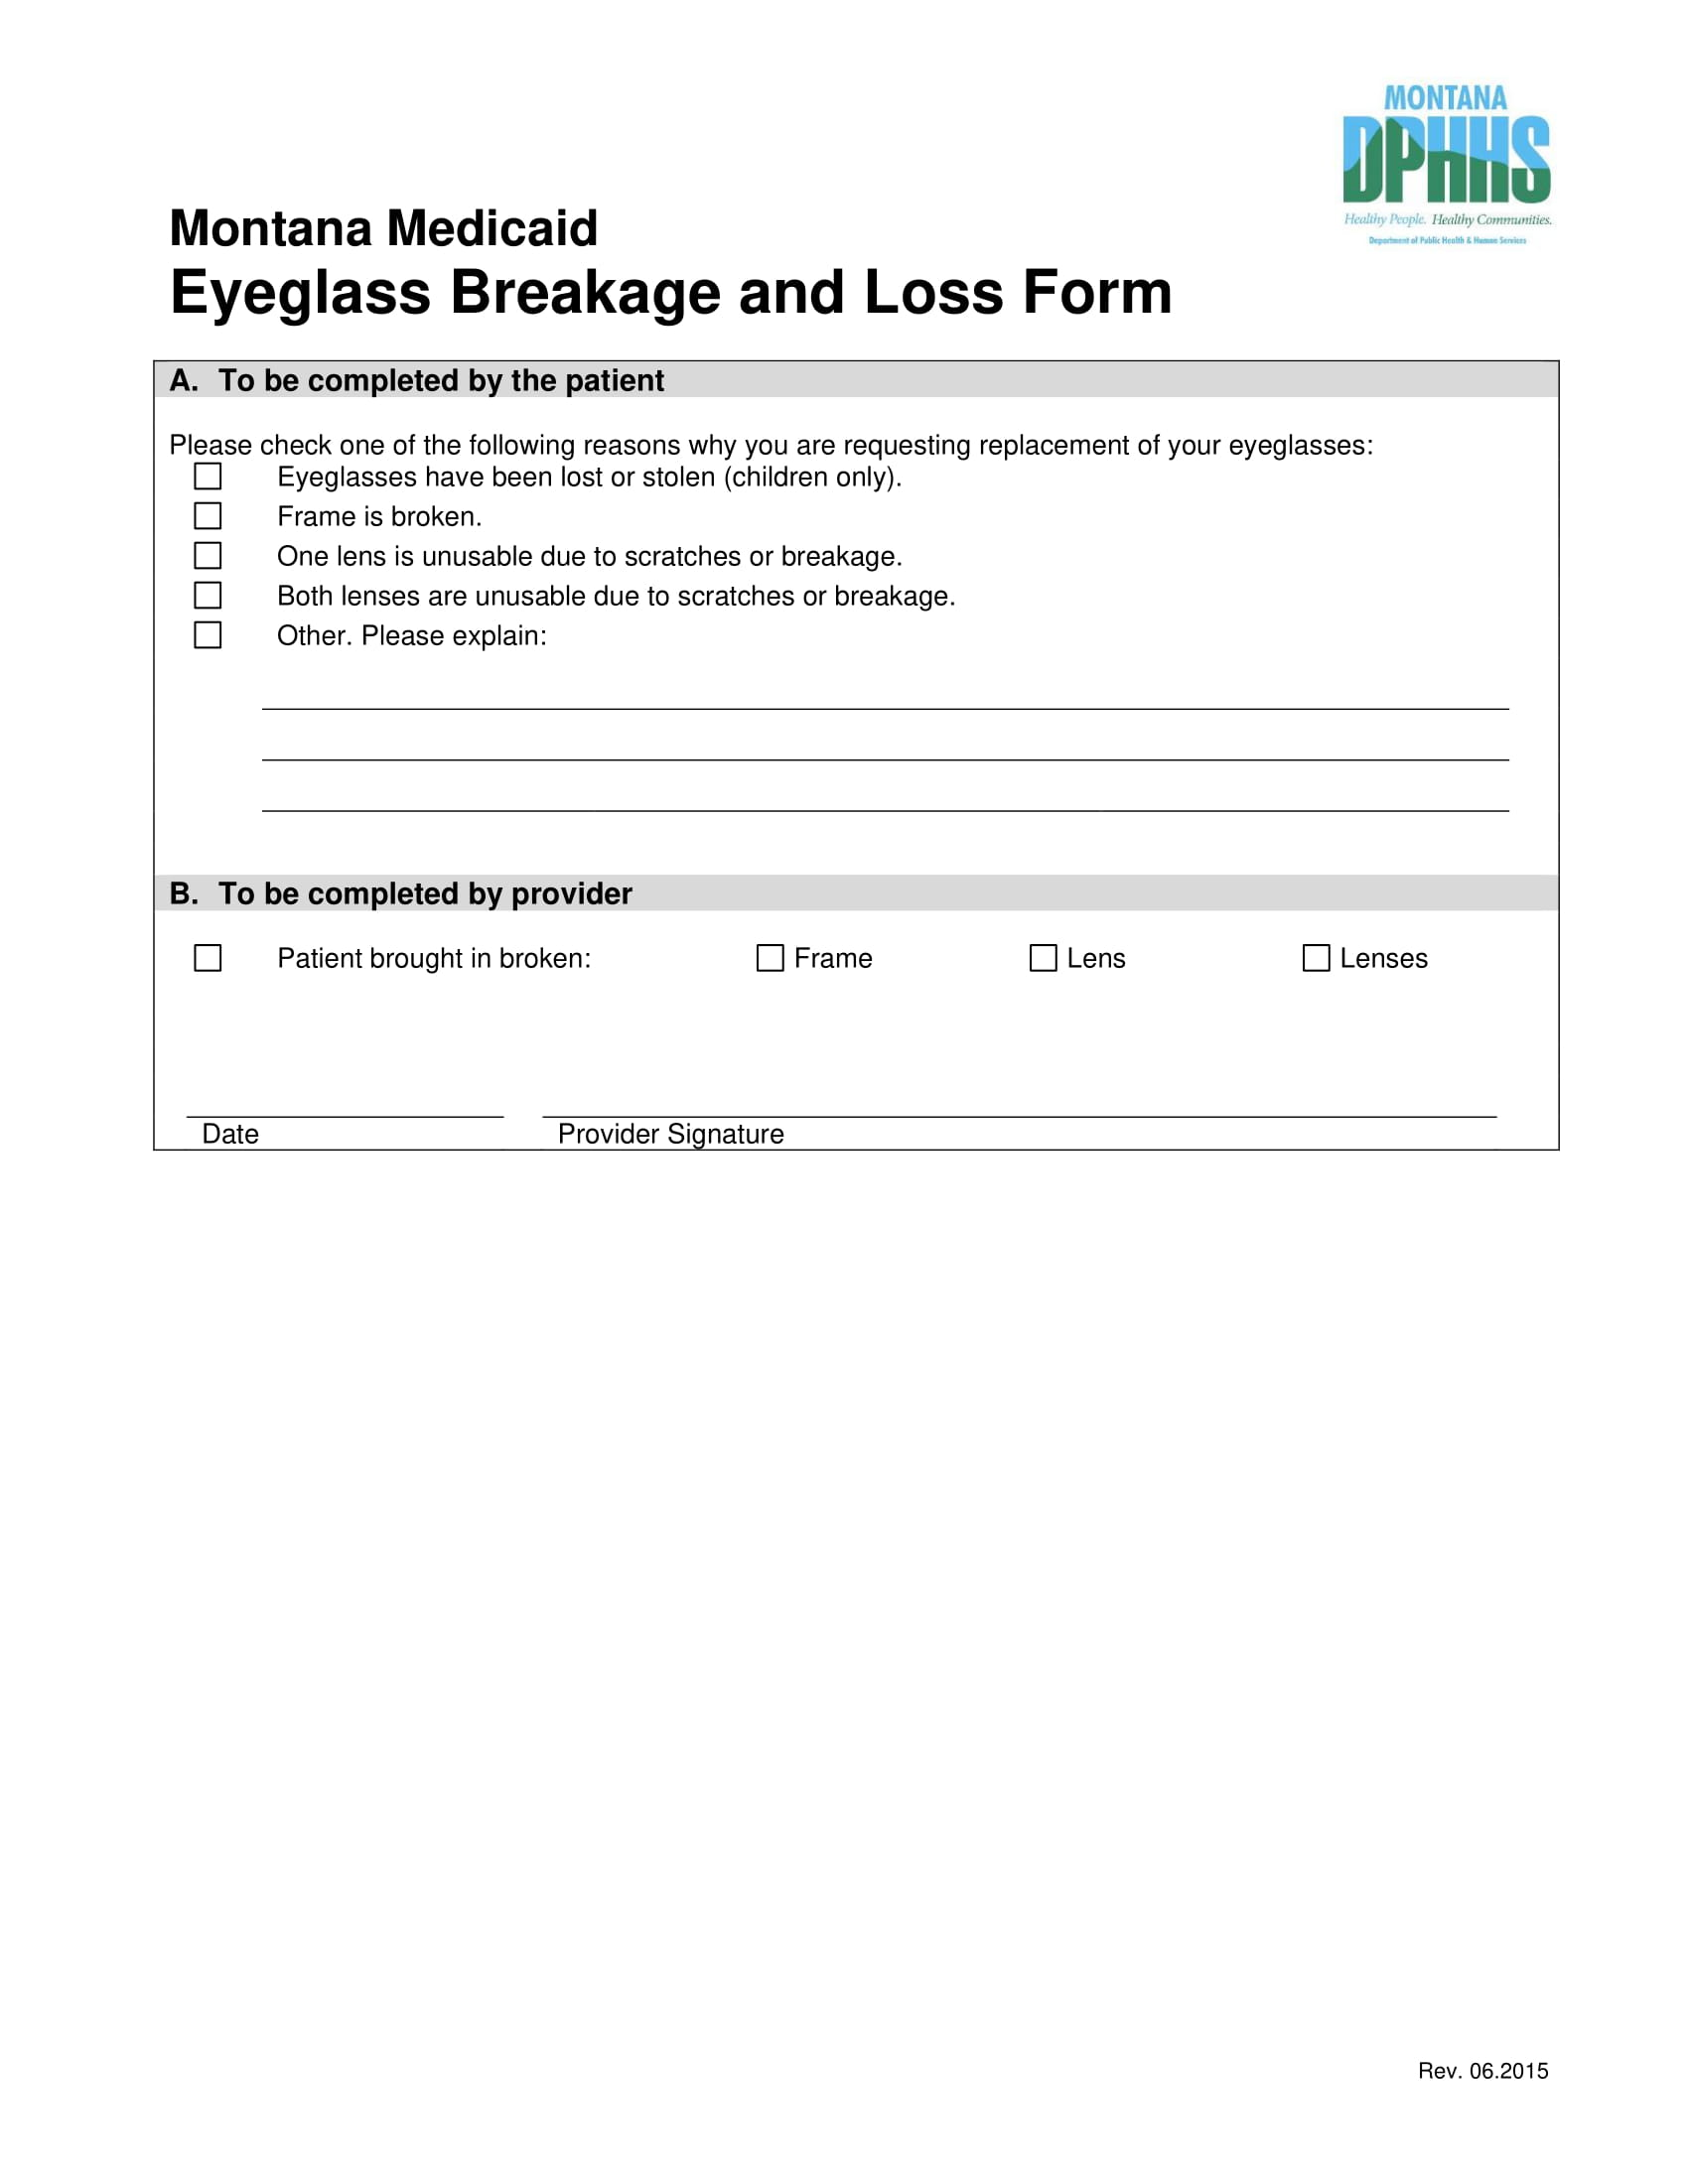 eyeglass breakage and loss form 1